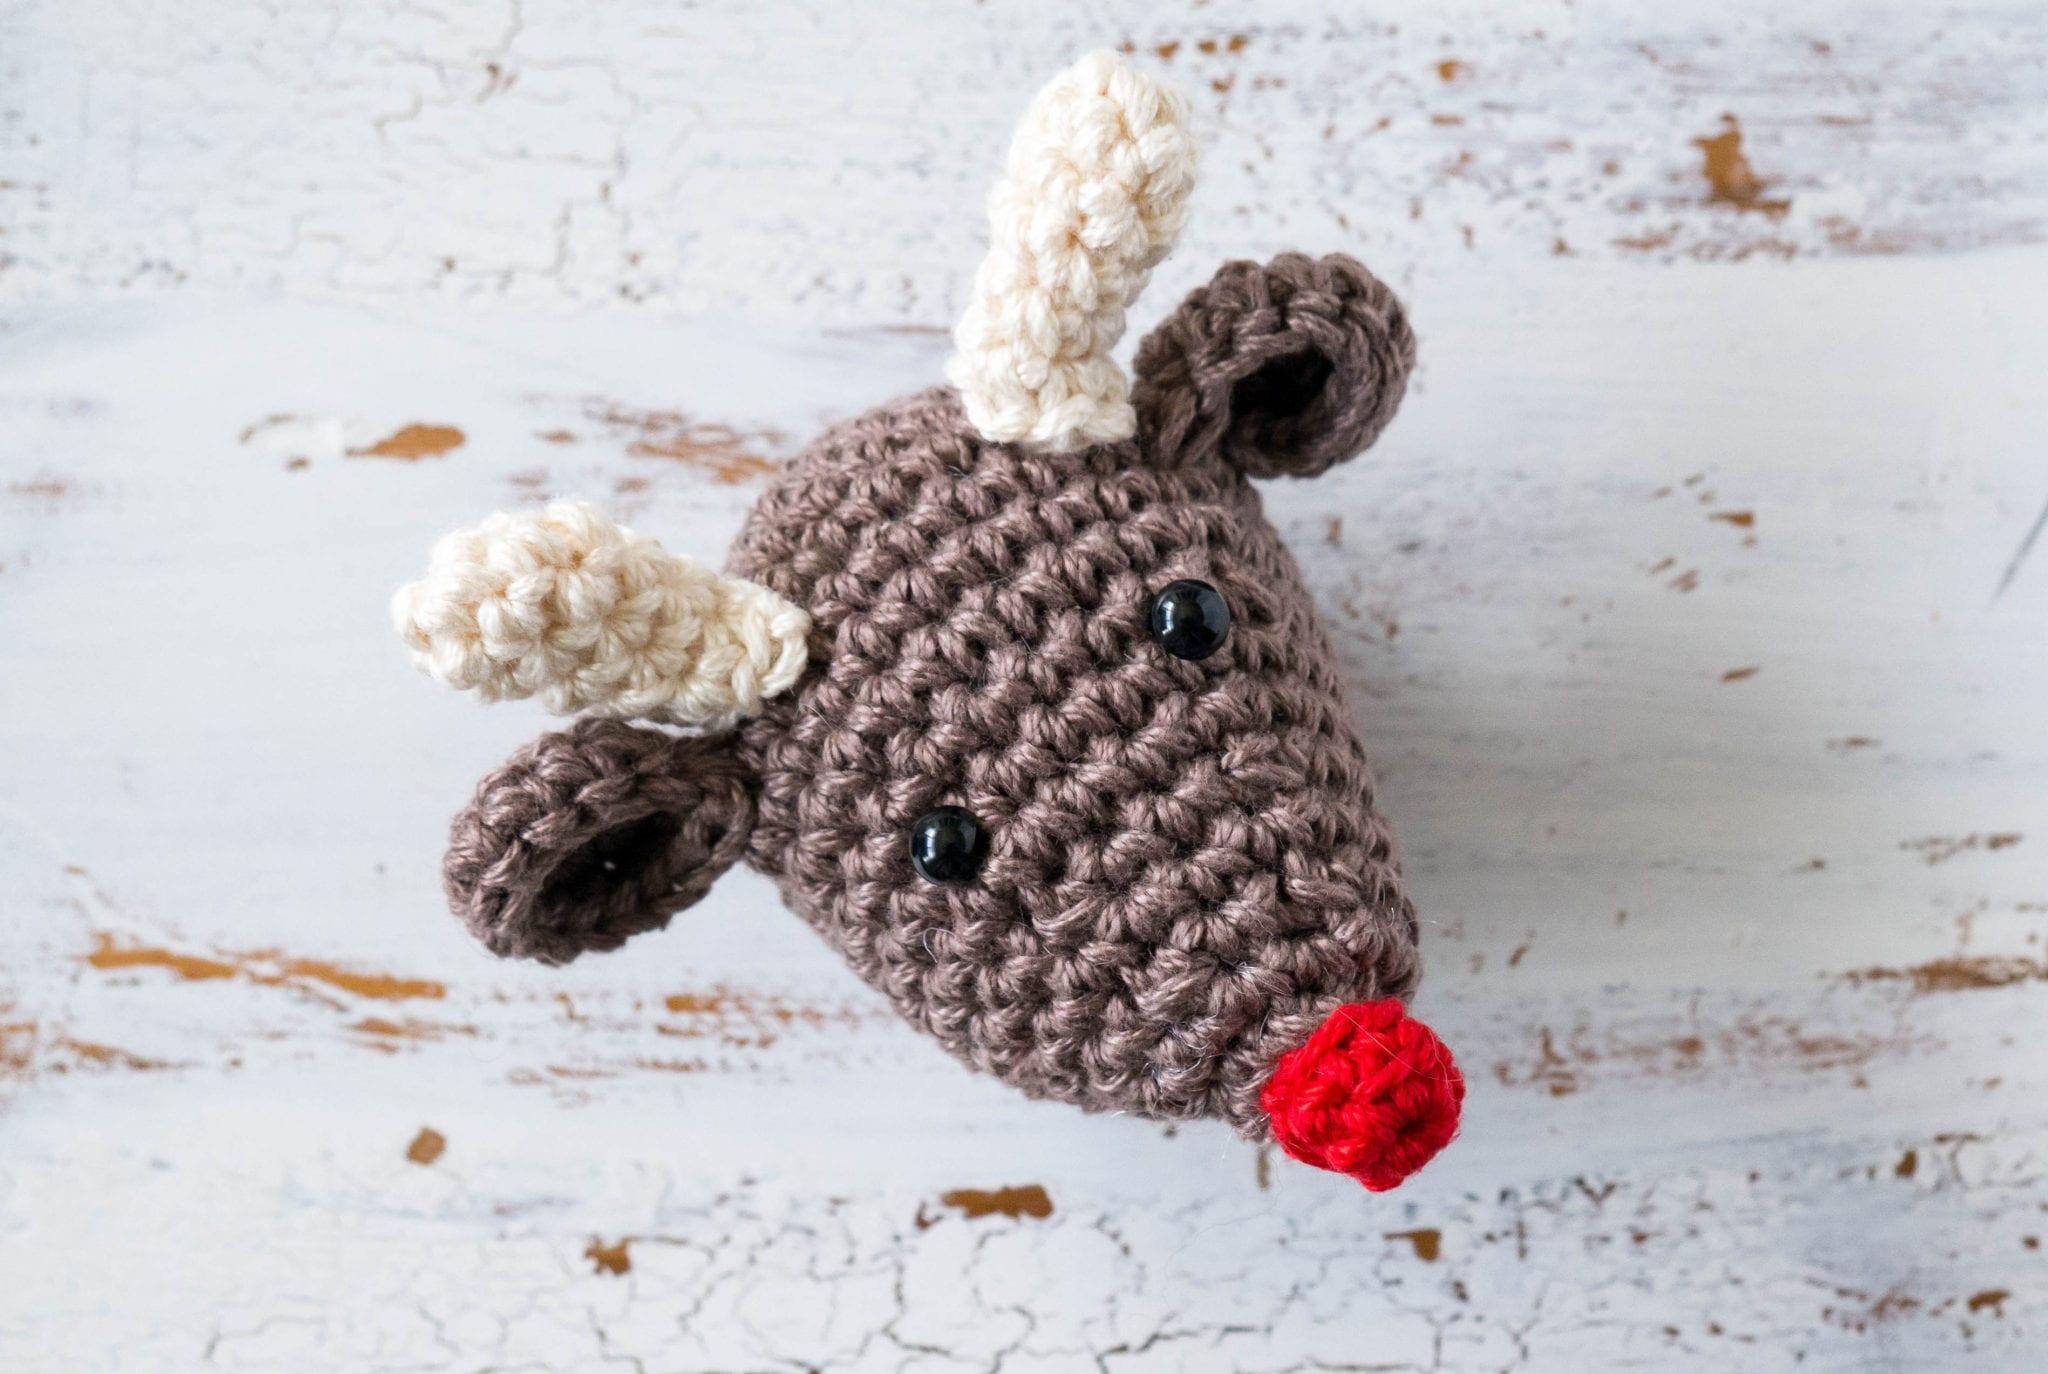 Crochet Rudolf the Rednosed Reindeer Christmas Ornament - Sewrella